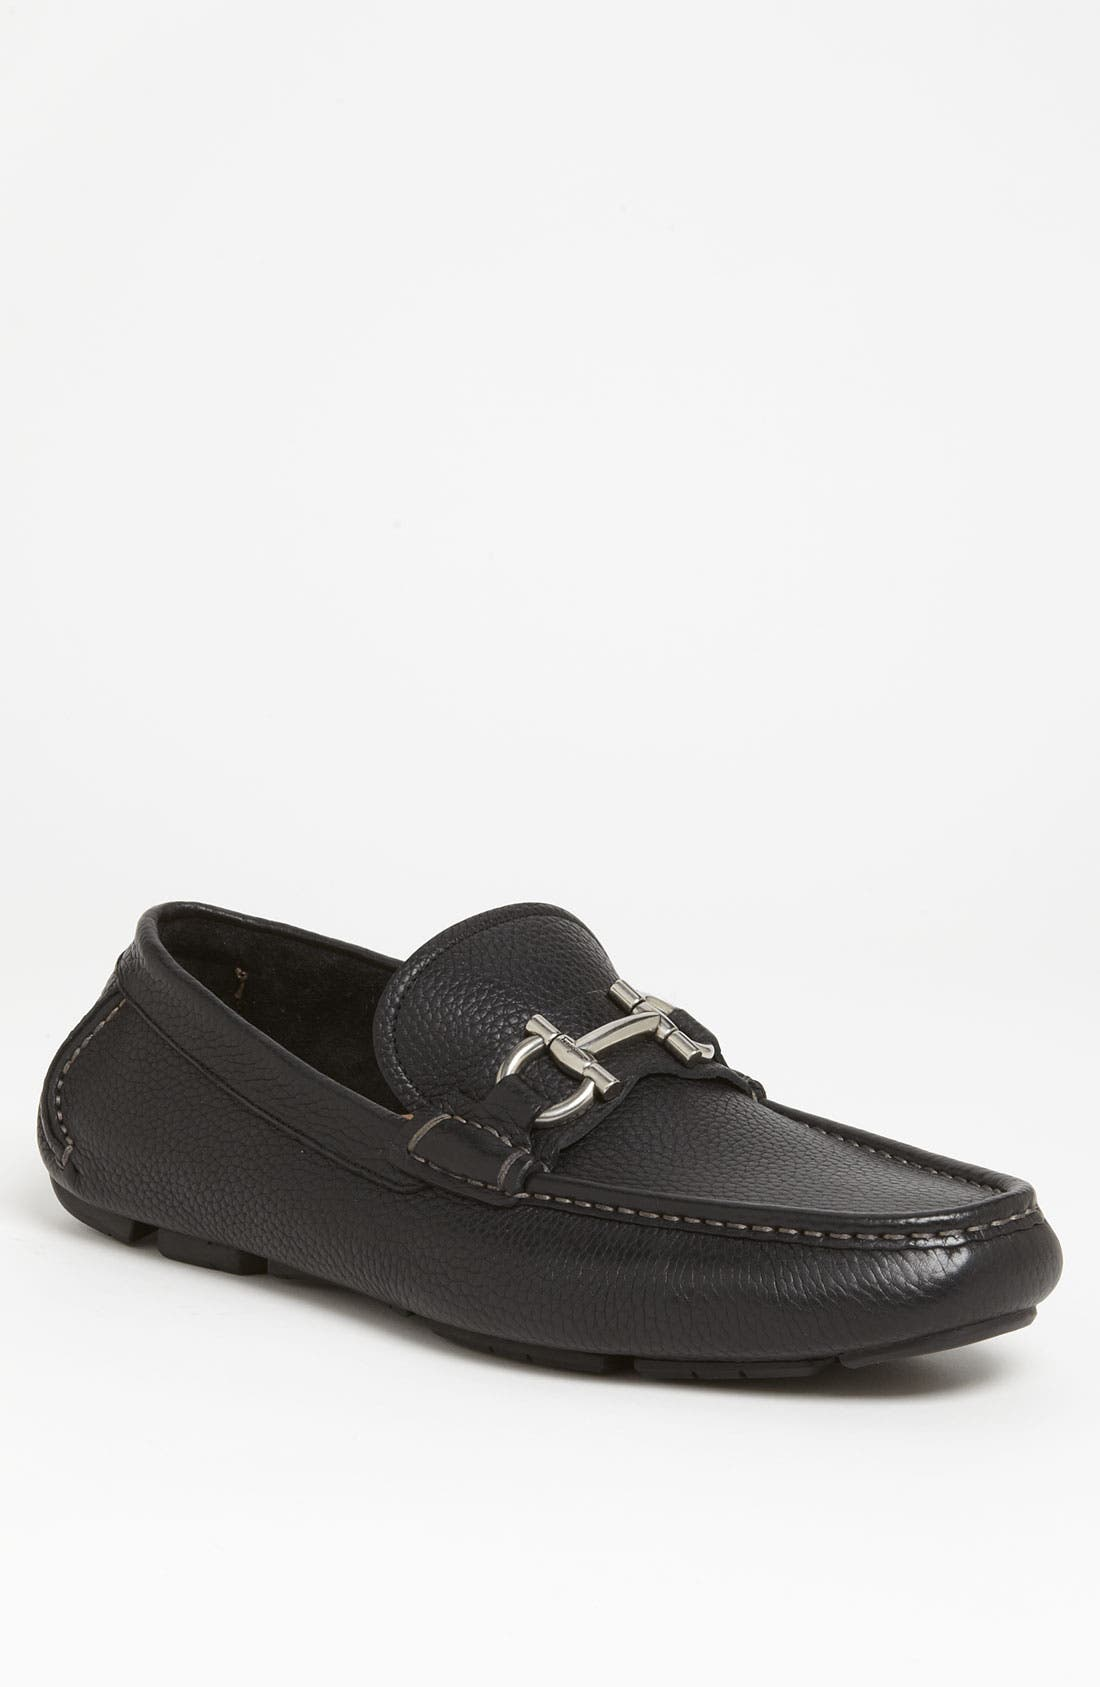 Alternate Image 1 Selected - Salvatore Ferragamo 'Daverio' Driving Shoe (Men)